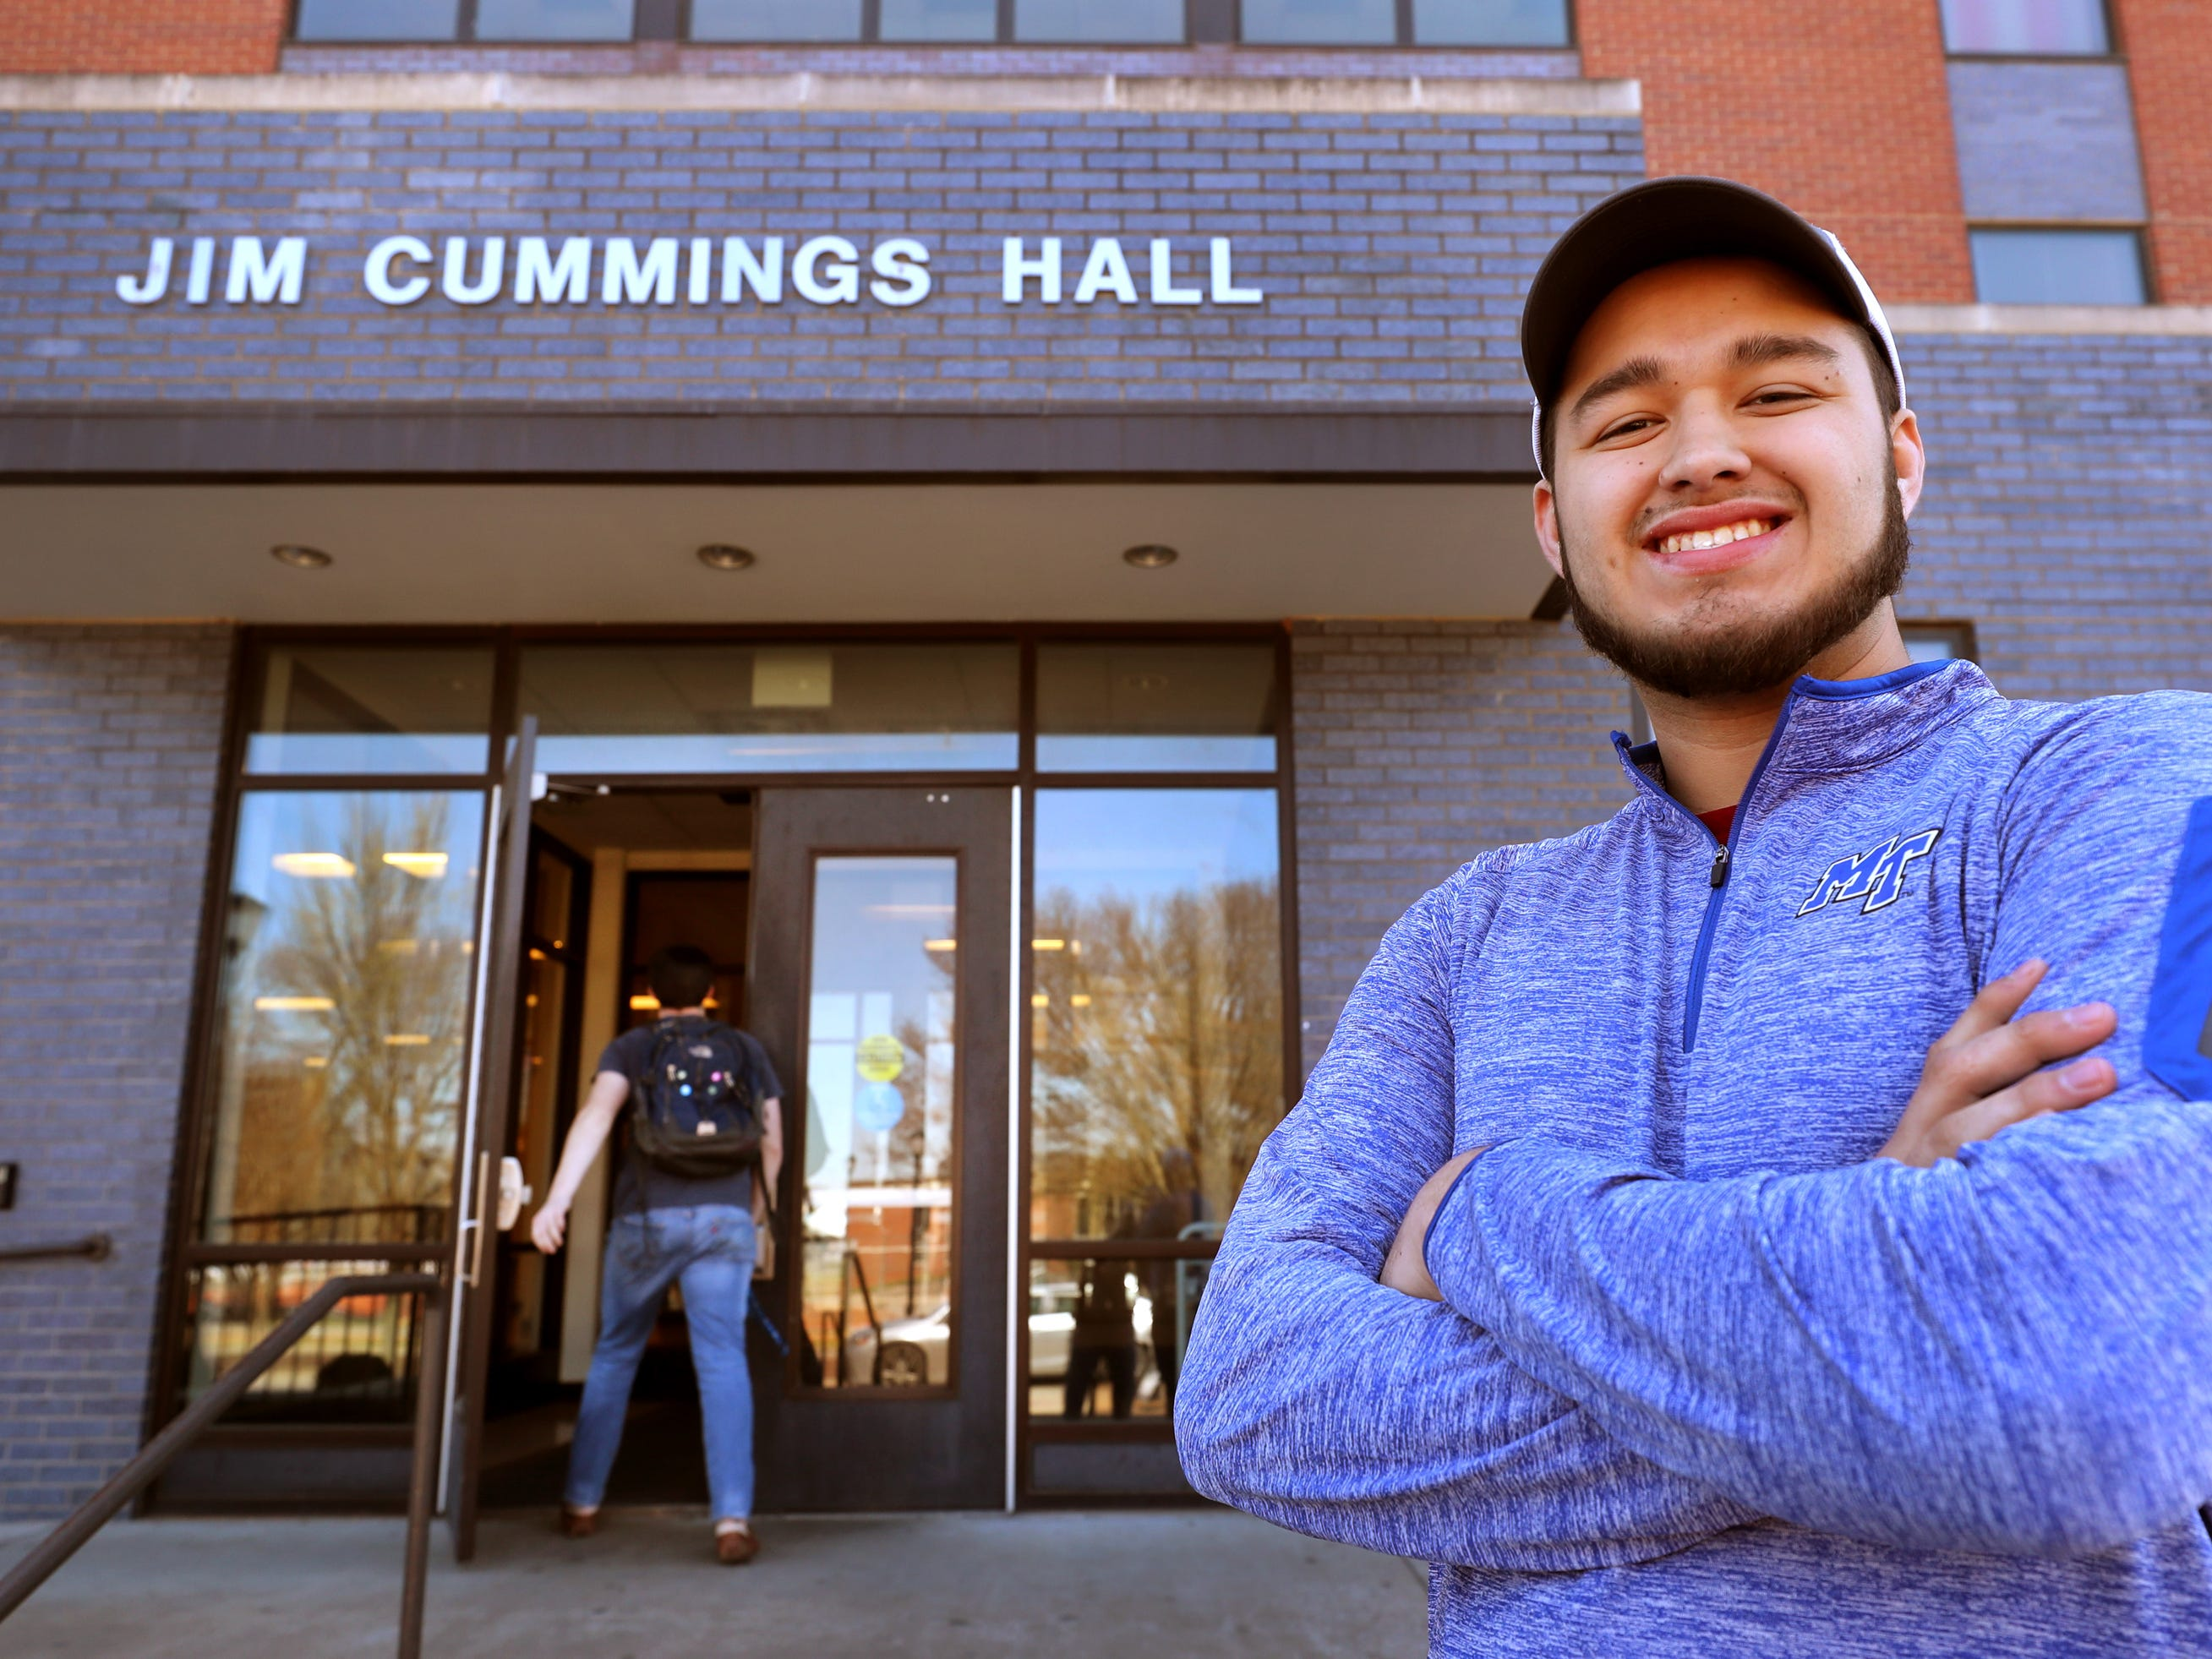 MTSU freshman Isaac Plata stands in front of his dorm, Jim Cummings Hall, at MTSU on Friday, March 22, 2019. Plata, who was once homeless, was able to participate in a program at MTSU that makes it easier for former homeless individuals to have a dorm room, while attending college.